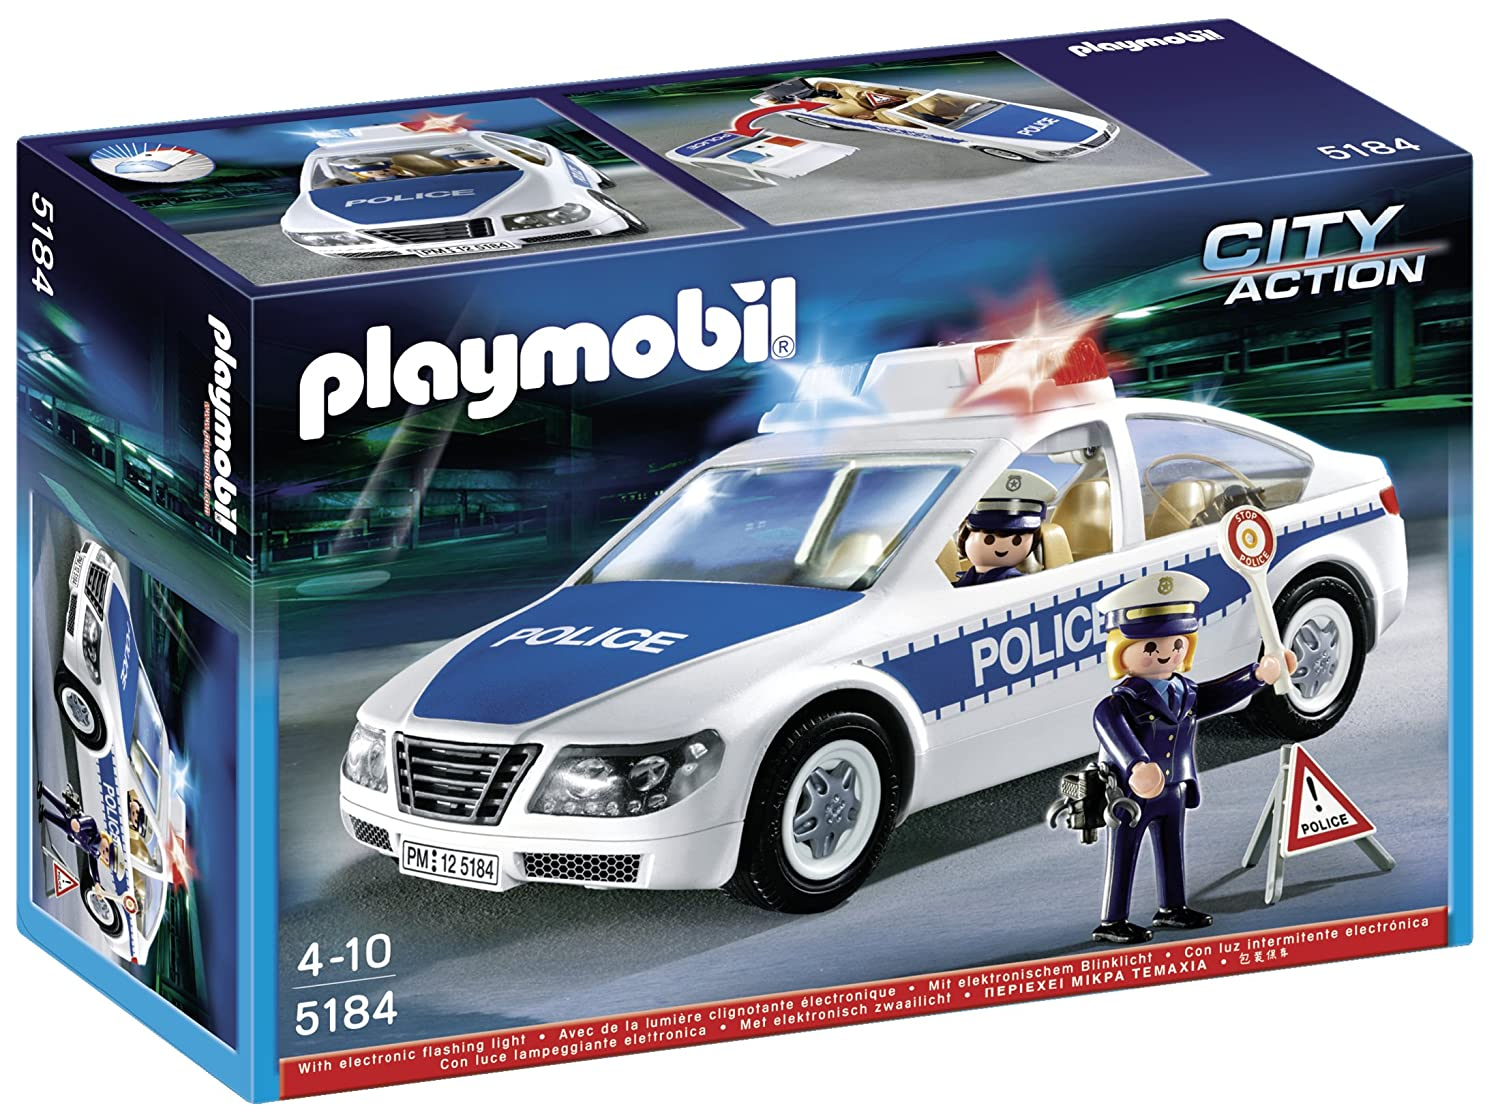 amazoncom playmobil police car with flashing light toys games - Playmobile Police